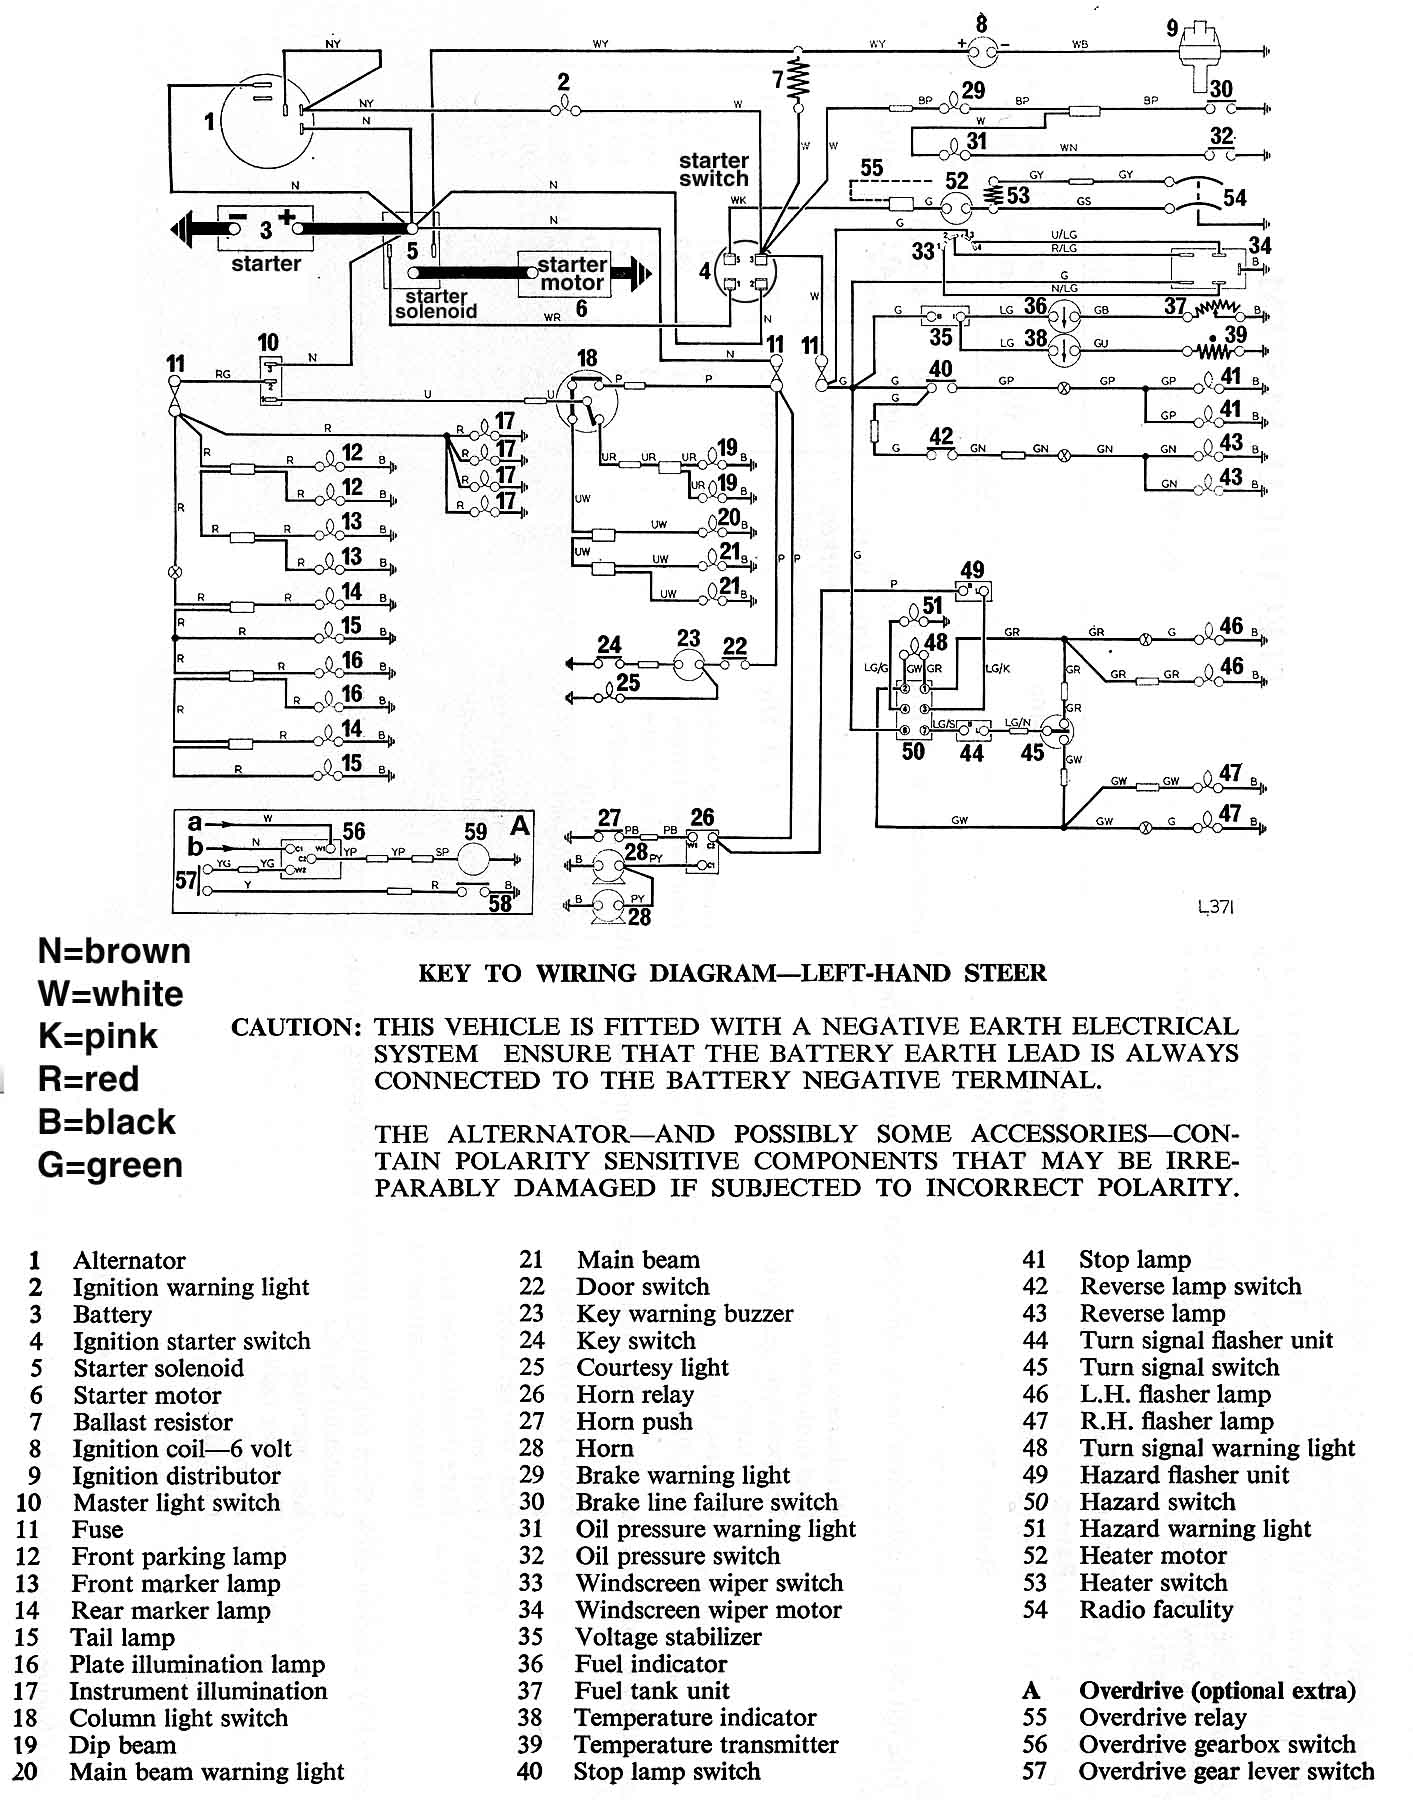 MKIVwire wiring schematics and diagrams triumph spitfire, gt6, herald 1978 triumph spitfire wiring diagram at crackthecode.co